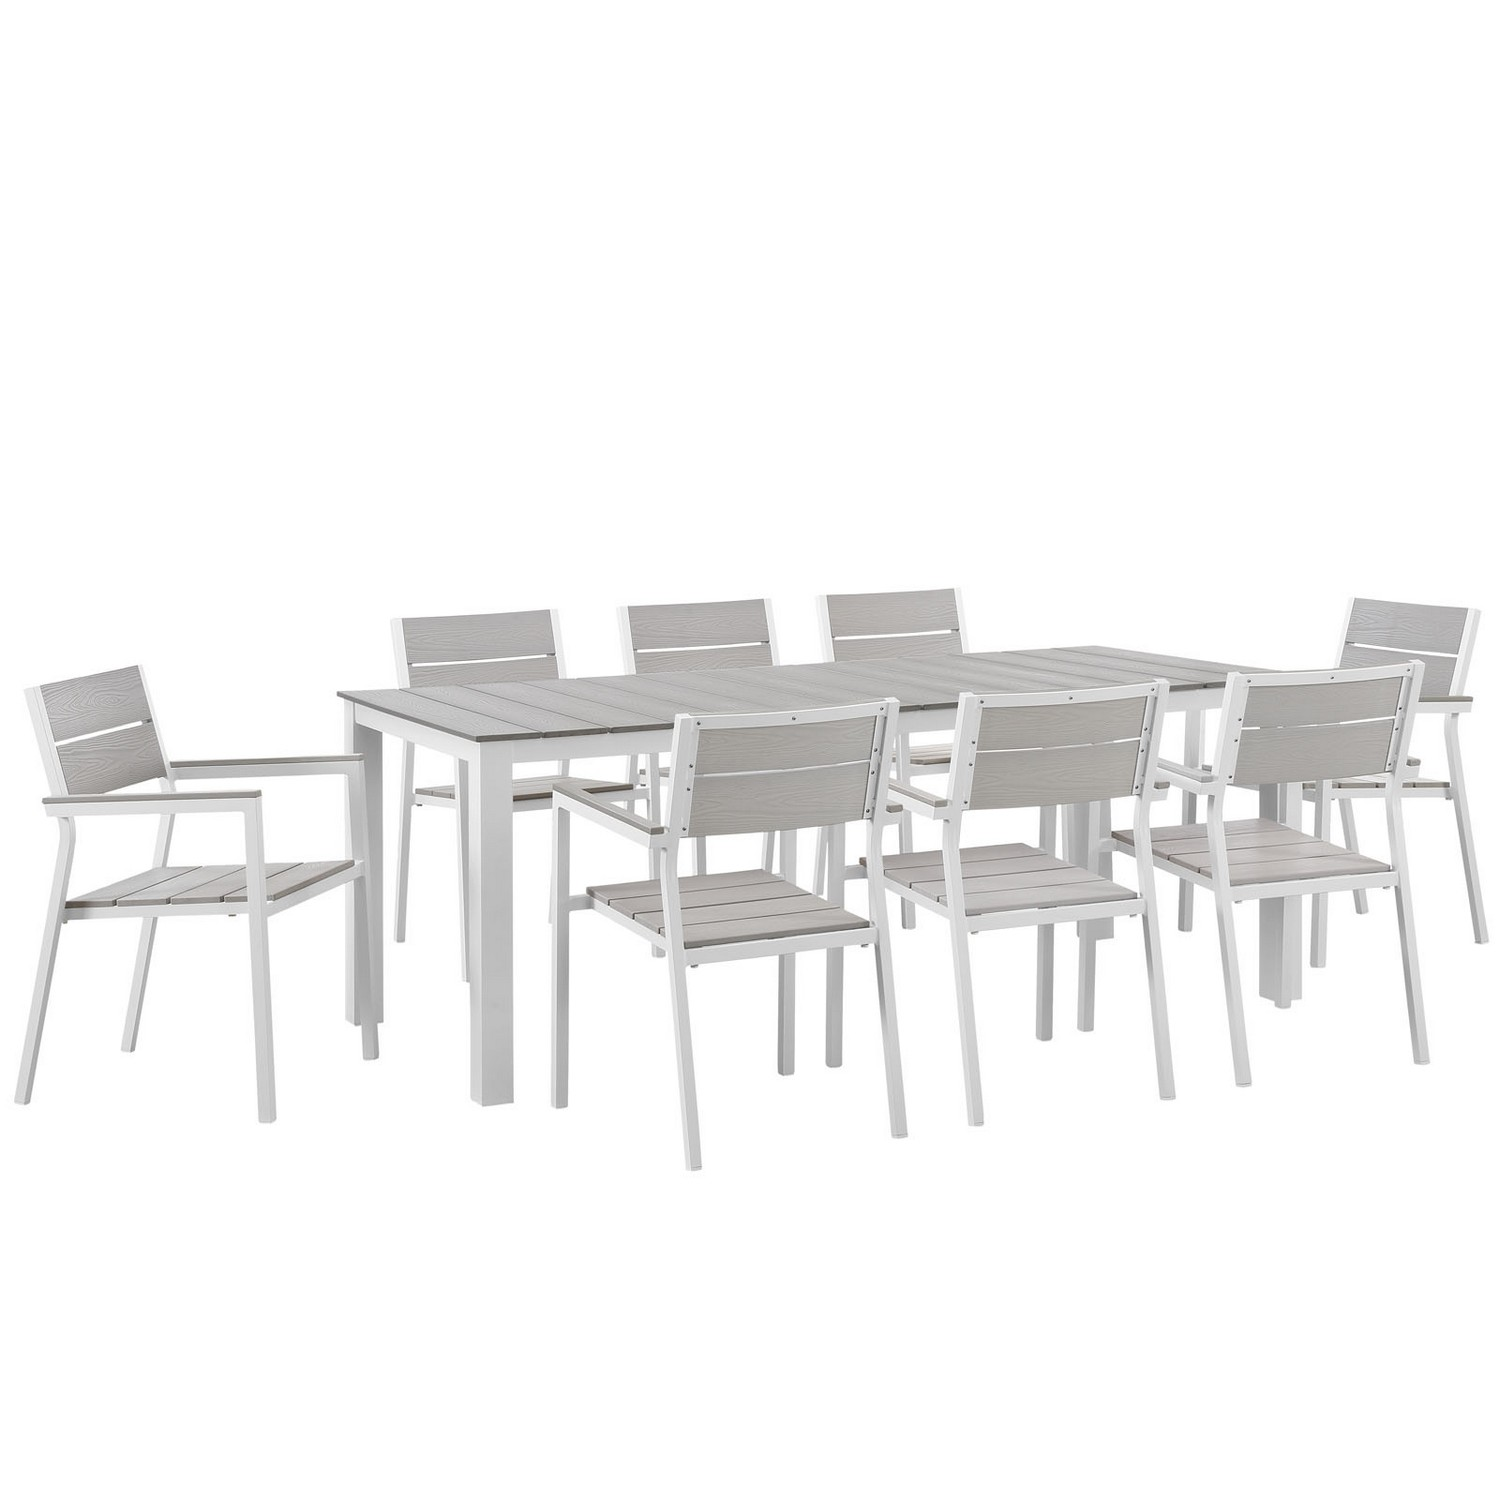 Modway Maine 9 Piece Outdoor Patio Dining Set - White/Light Gray